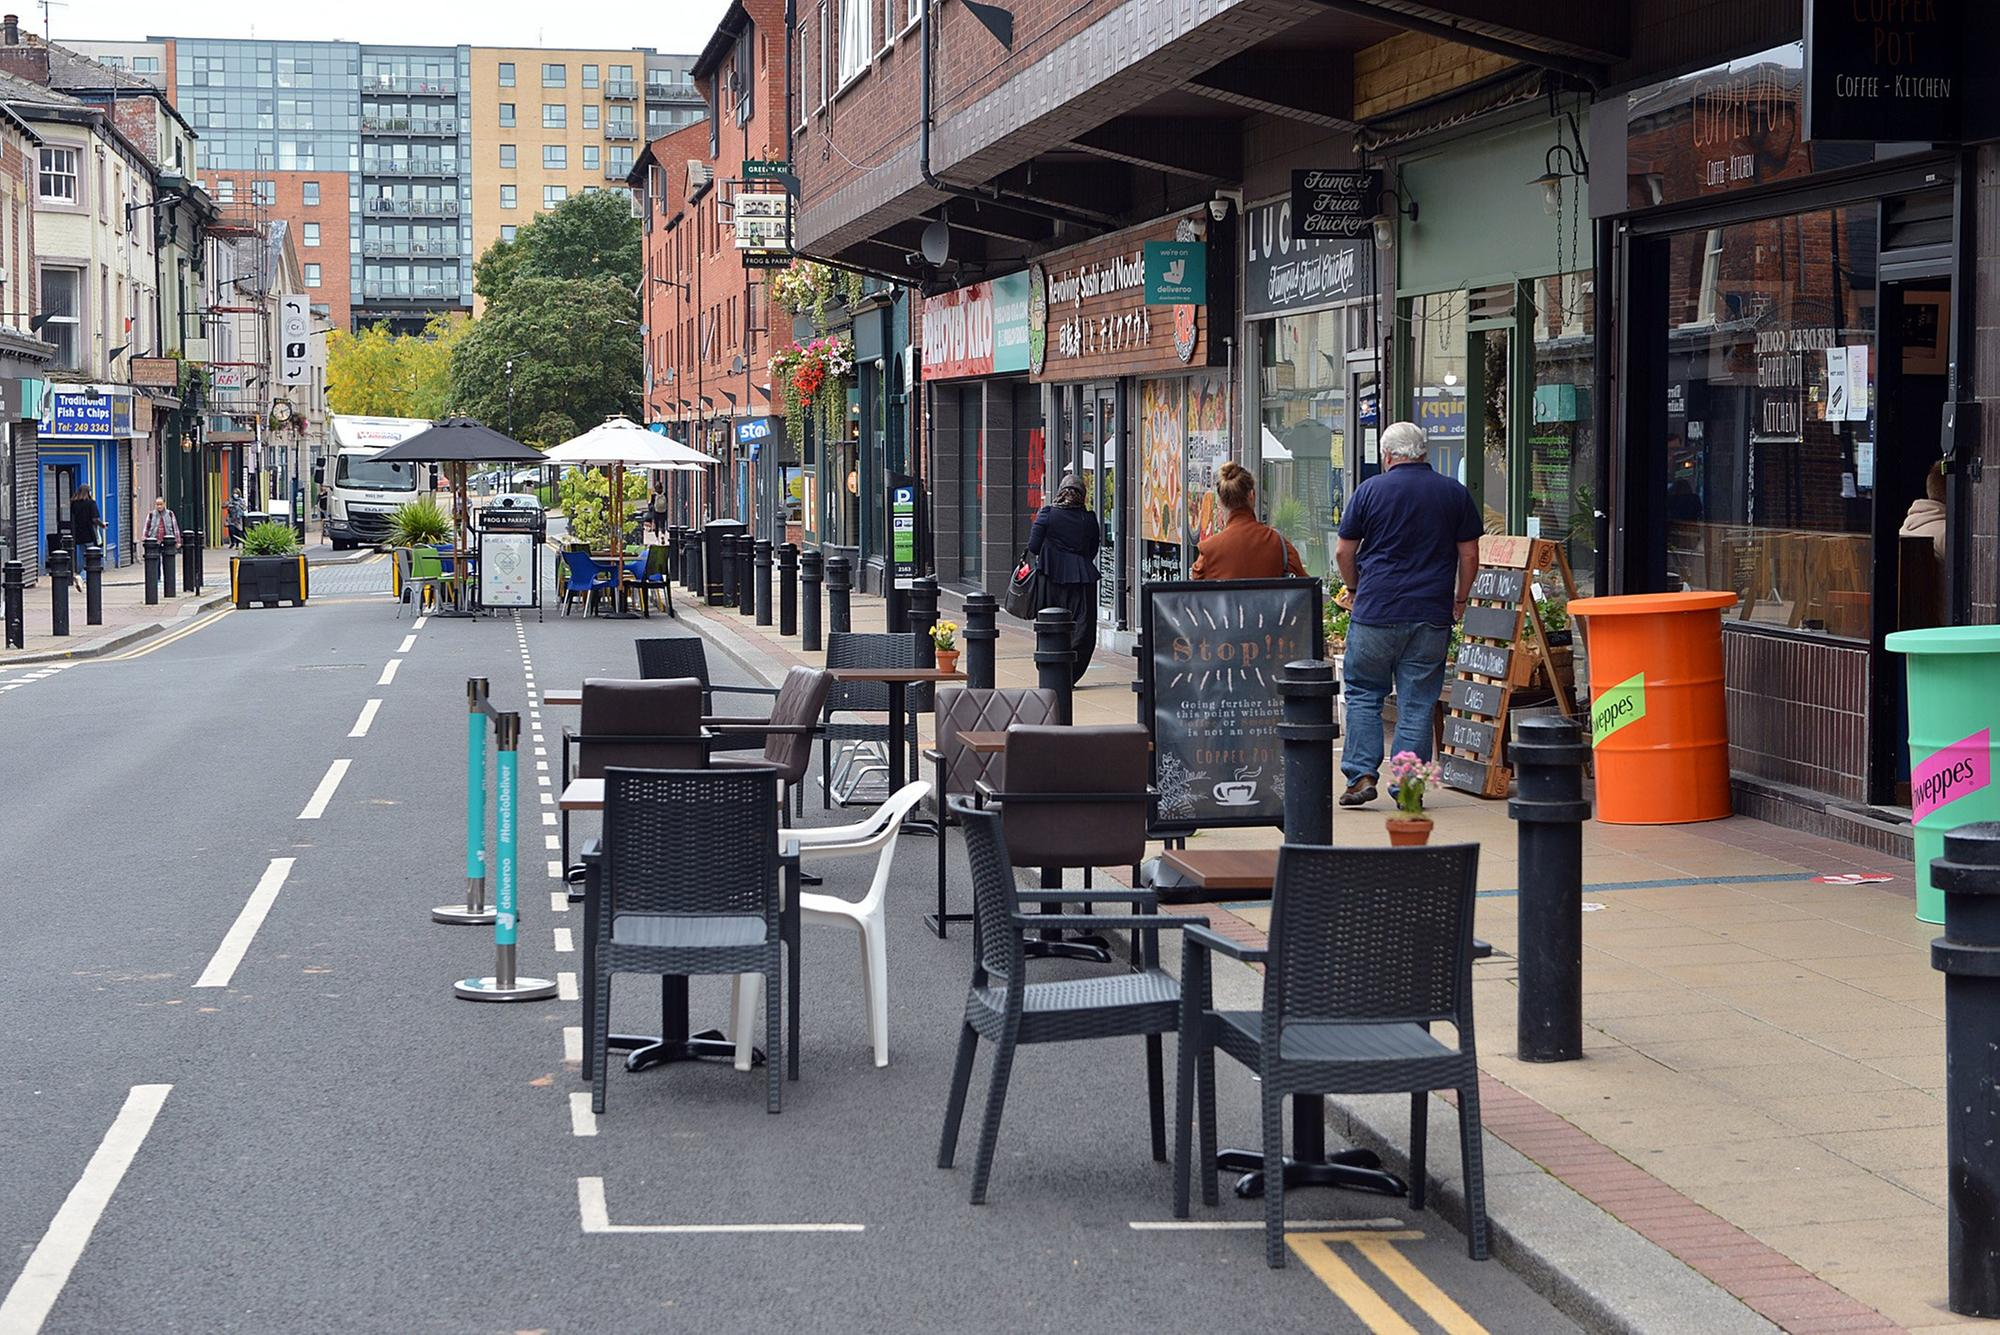 1,200 masks given out and 51 pavement licences granted to help Sheffield's hospitality sector